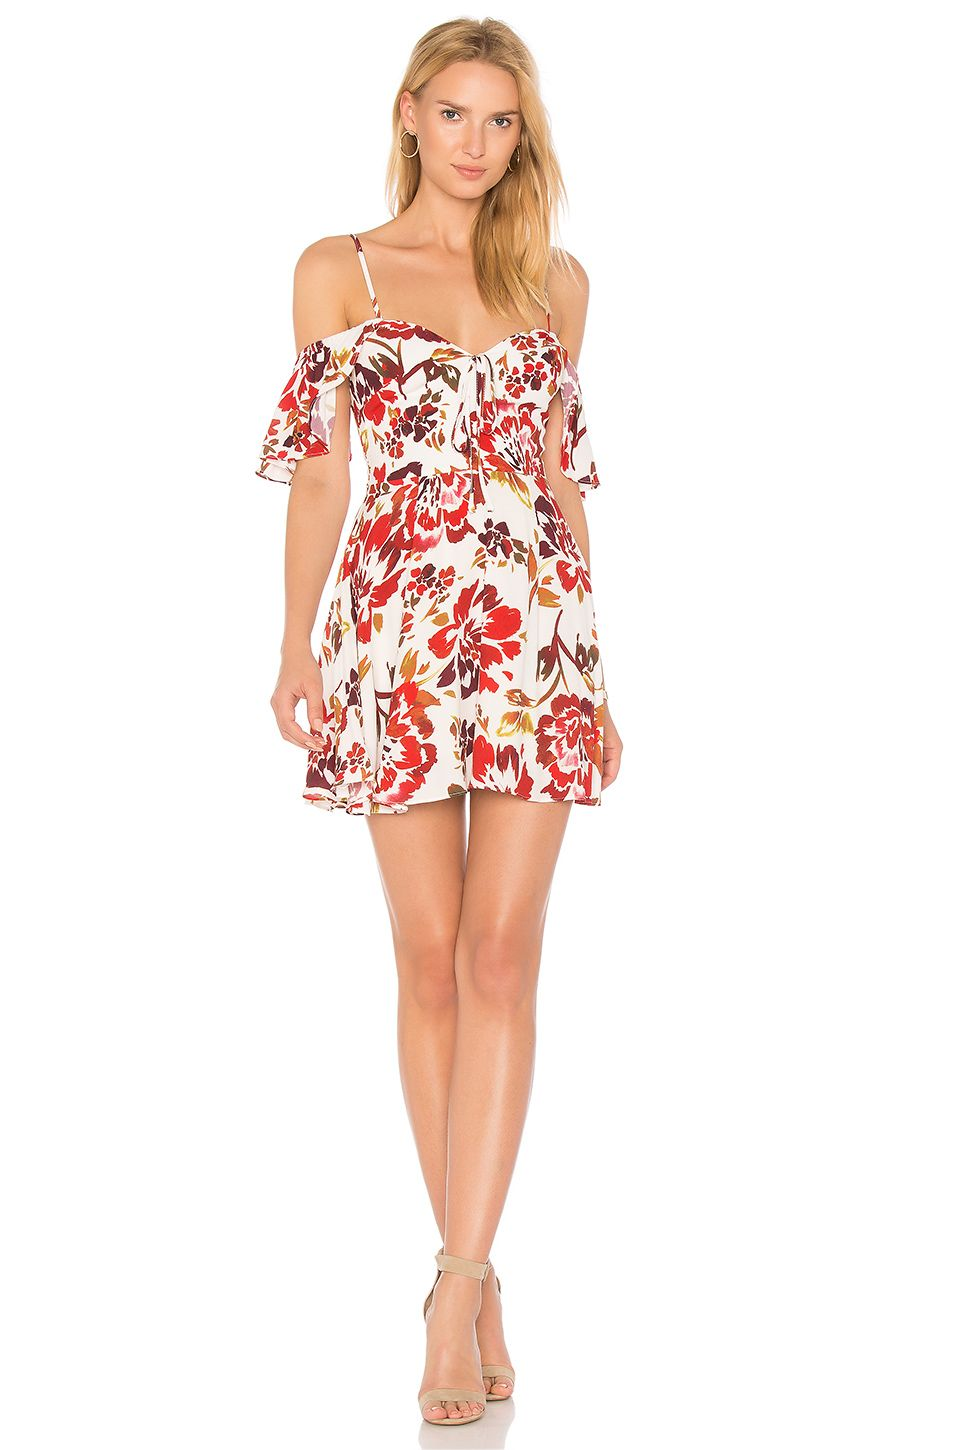 Lovers Friends All Over Dress In Day Floral Revolve Ropa De Moda Moda Ropa 2020 popular 1 trends in women's clothing with svoryxiu floral dress and 1. pinterest